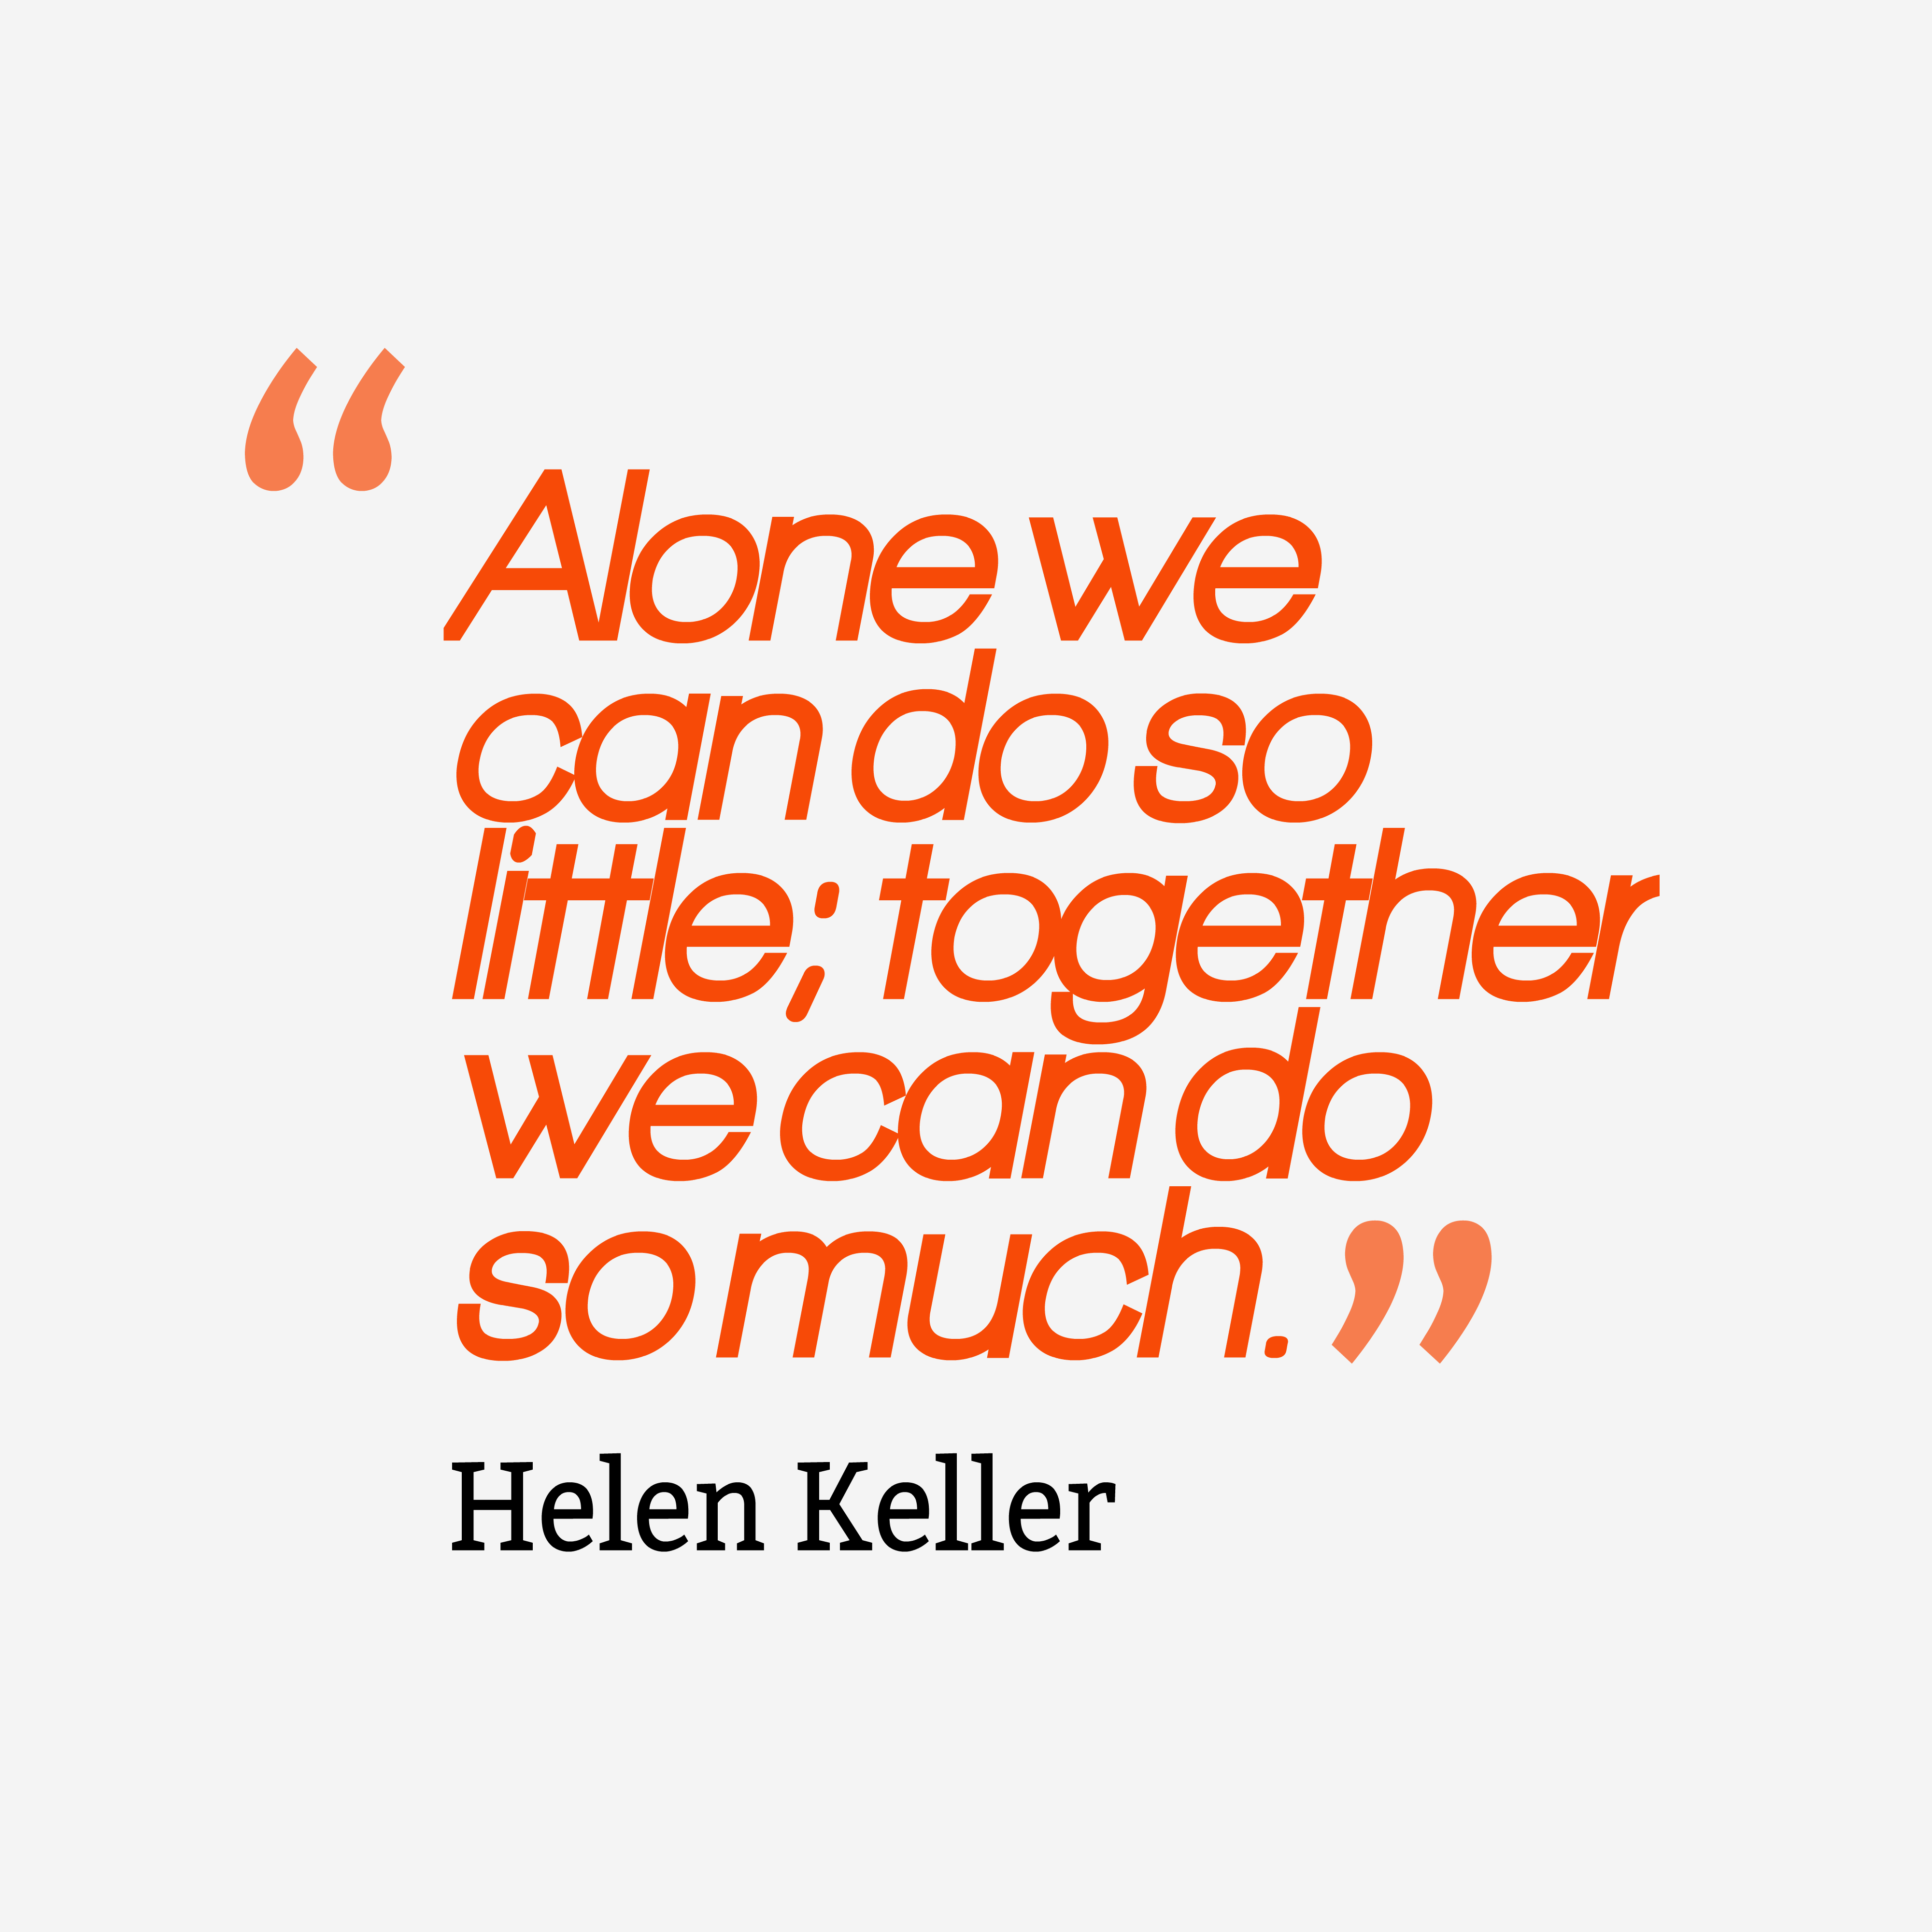 Quotes by helen keller yahoo image search results helen keller helen keller quotes altavistaventures Image collections